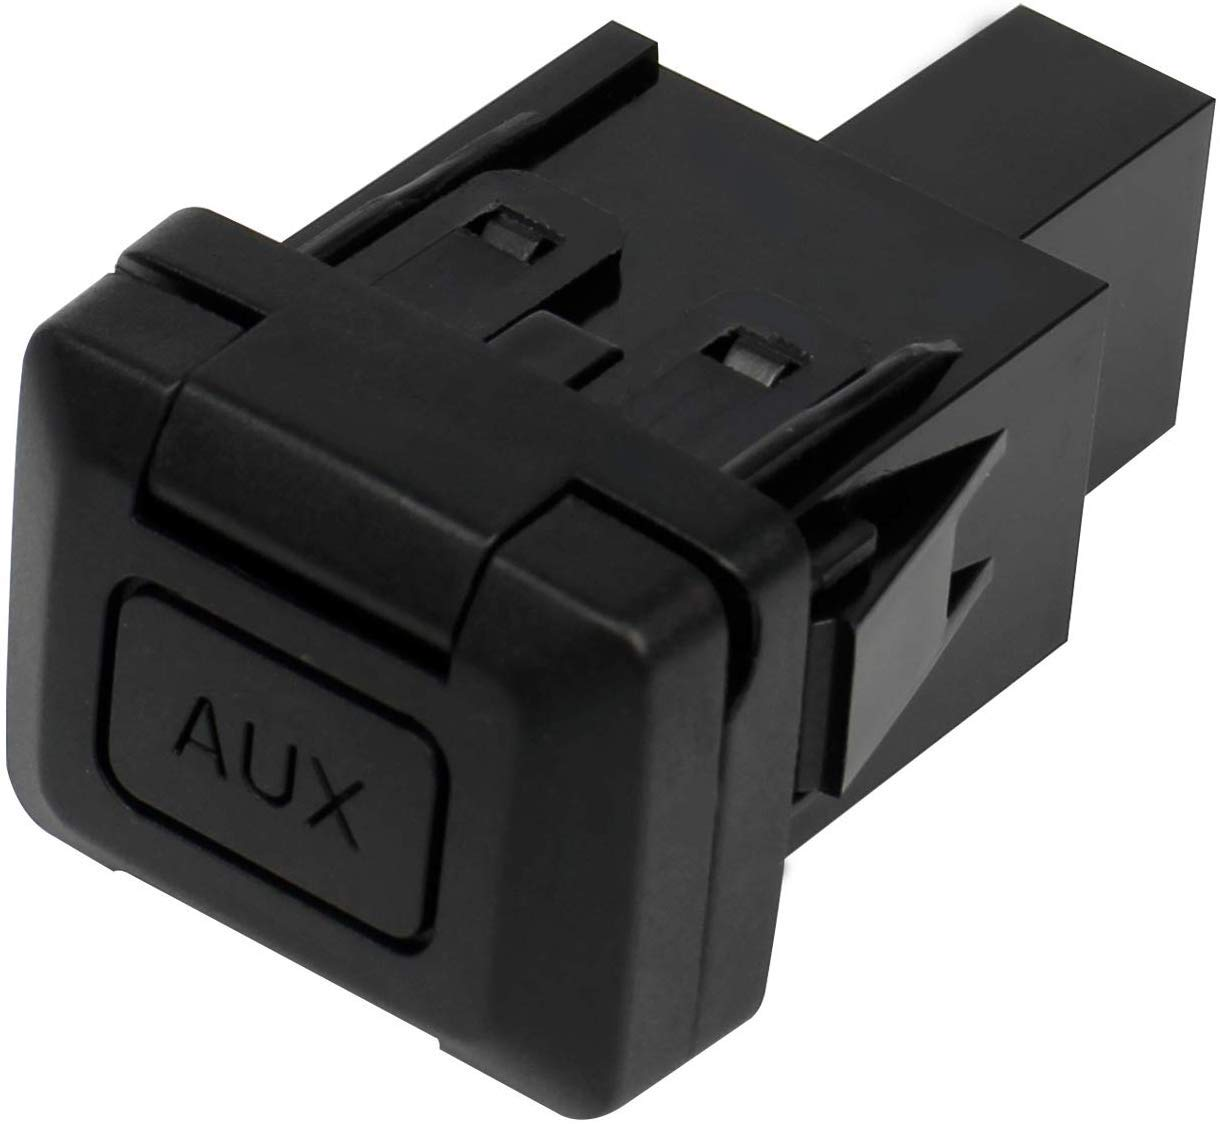 39112-SNA-A01 Aux Input Adapter Replacement Audio Input Jack Radio Kit Car Repair Parts by CRV 09-11 Auxiliary Aux Port for Civic 06-11